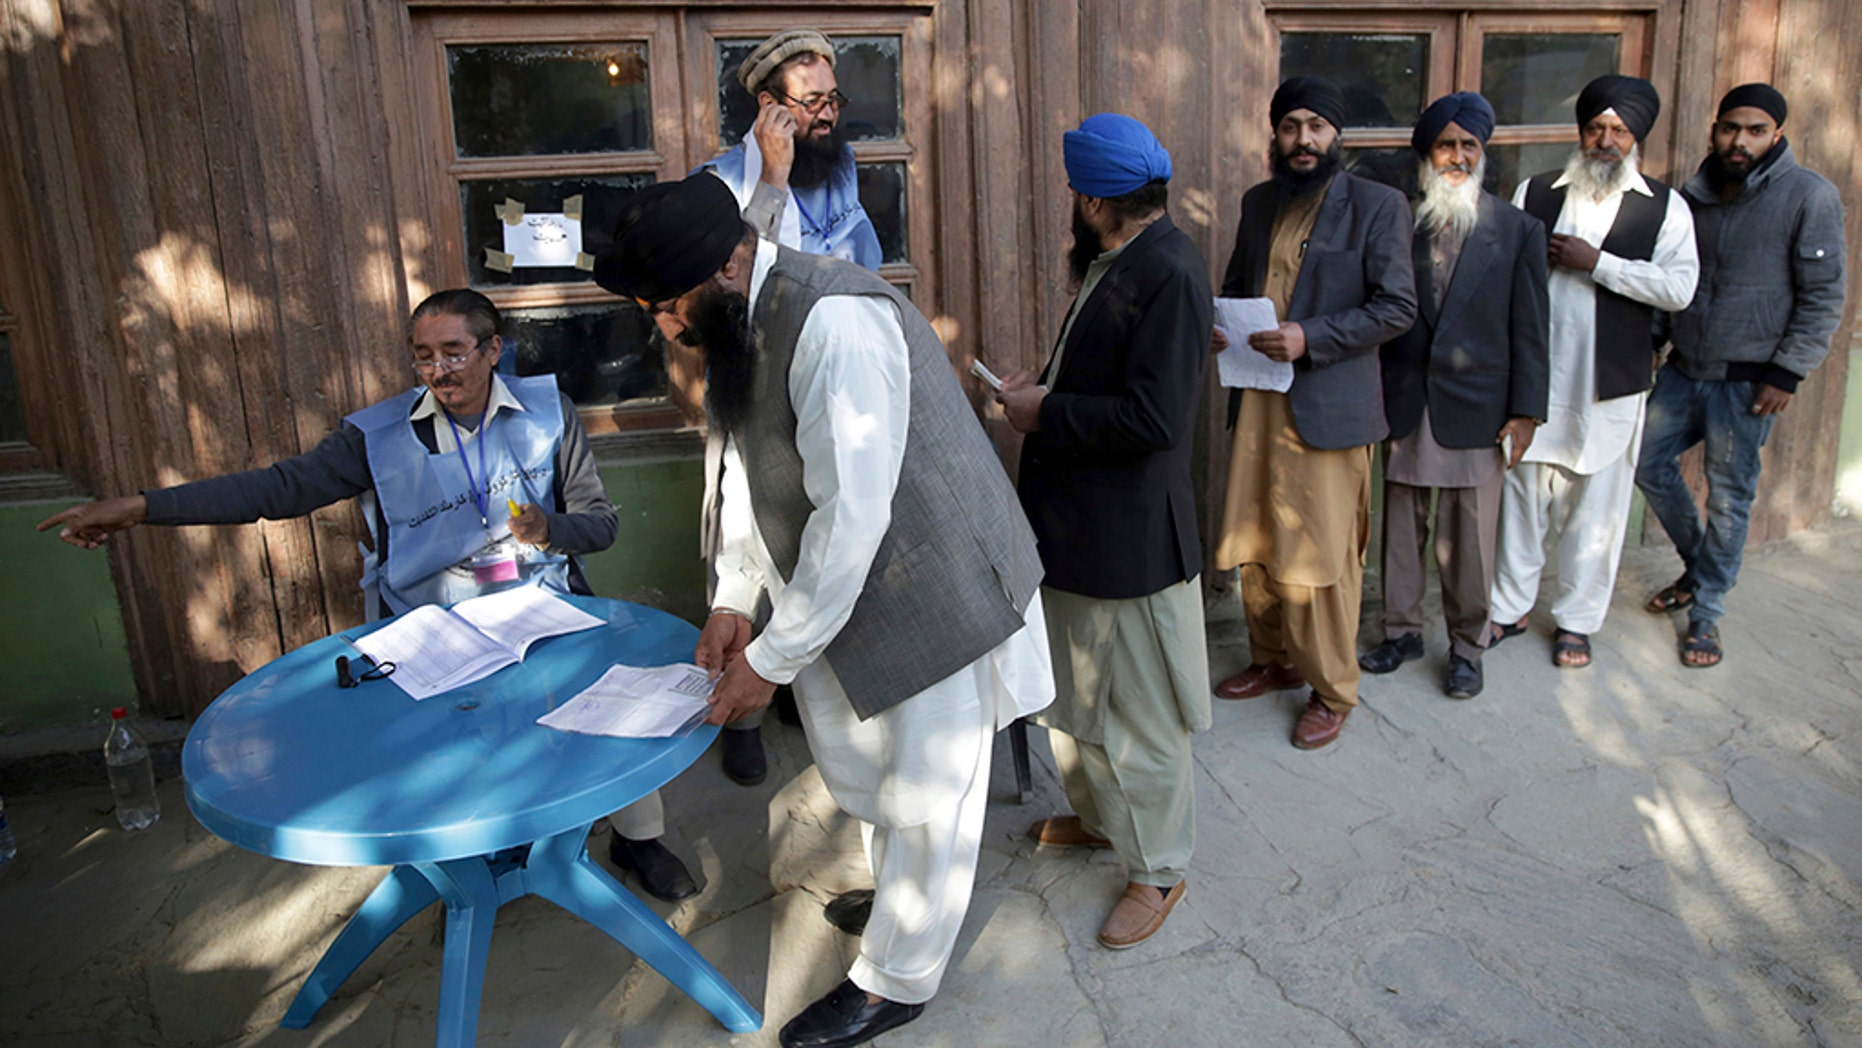 Voters from the minority Sikh register to cast ballots in parliamentary elections in  Kabul, Afghanistan, Saturday. Tens of thousands of Afghan forces fanned out across the country as voting began in the elections that followed a campaign marred by relentless violence. (AP Photo/Massoud Hossaini)